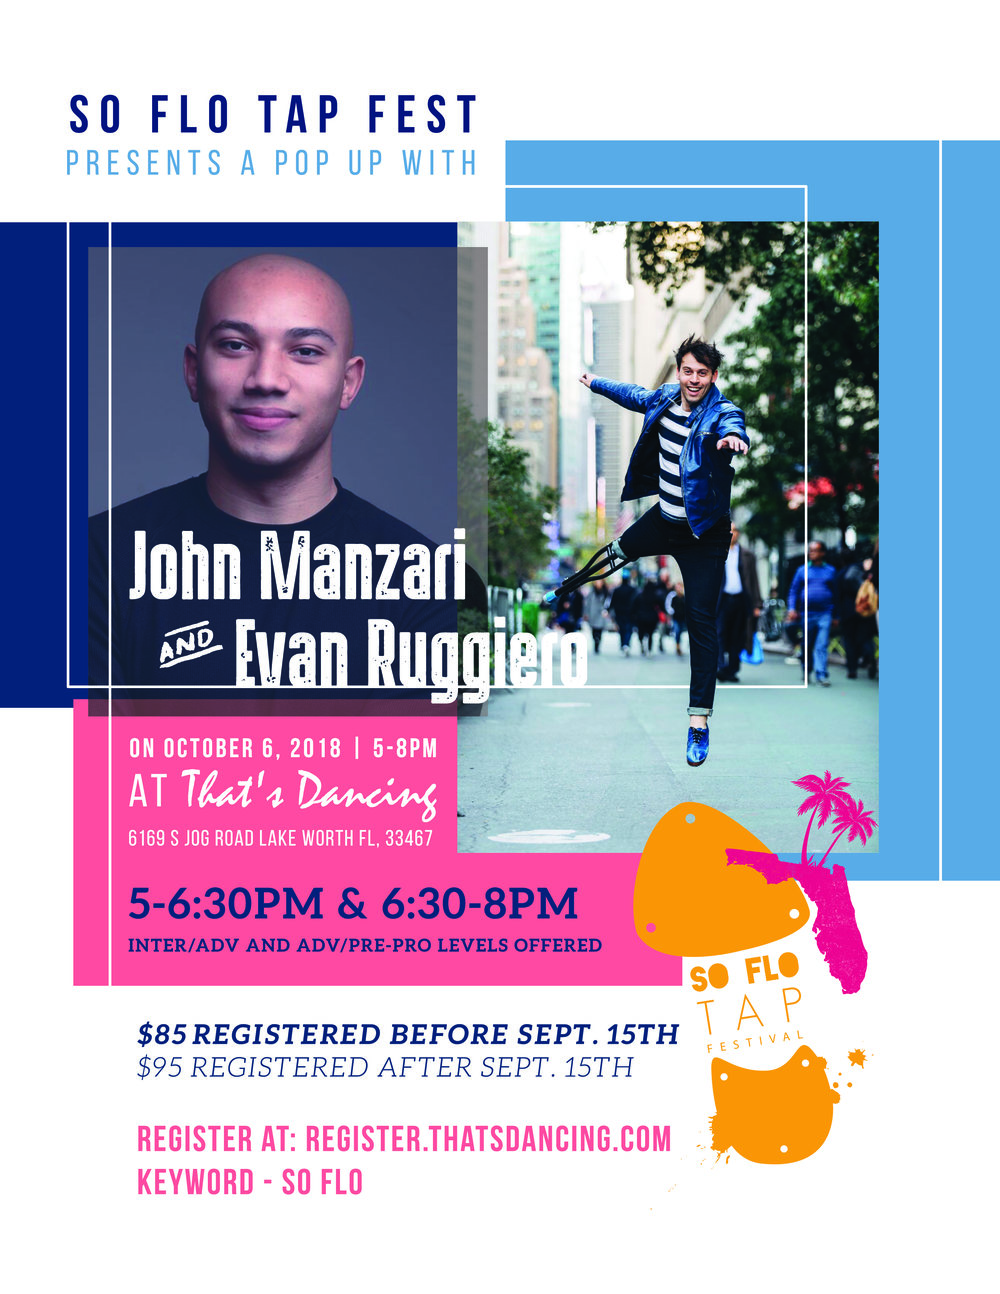 So Flo Tap Fest Presents    A Pop Up with John Manzari & Evan Ruggiero  October 6, 2018 5:00-8:00pm